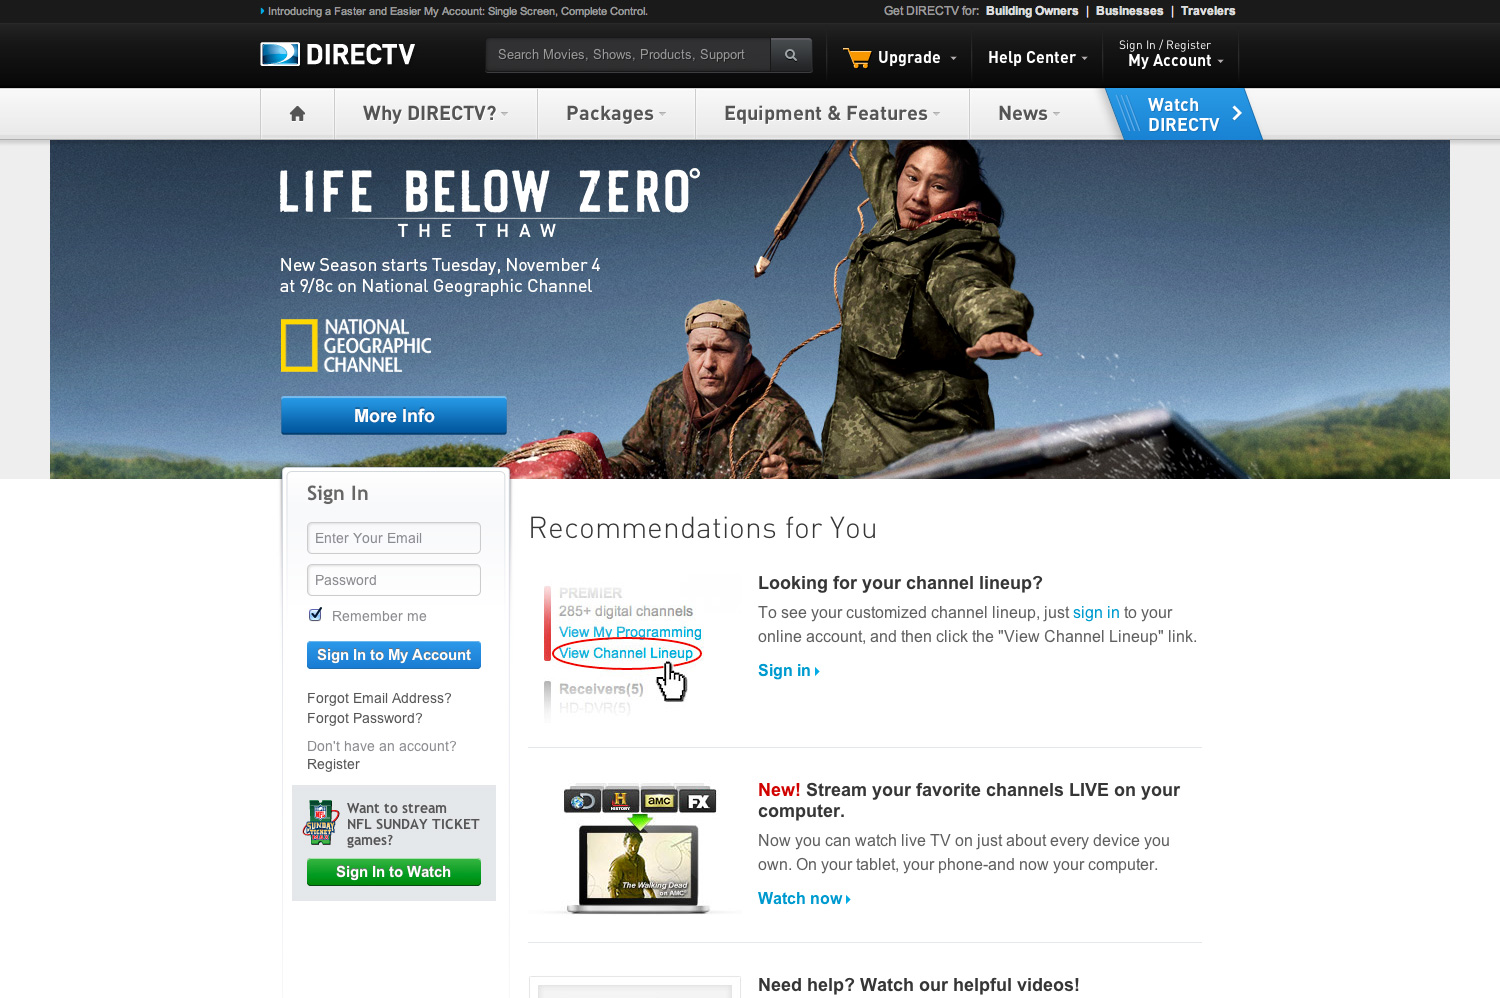 DIRECTV Tap A Customer Homepage